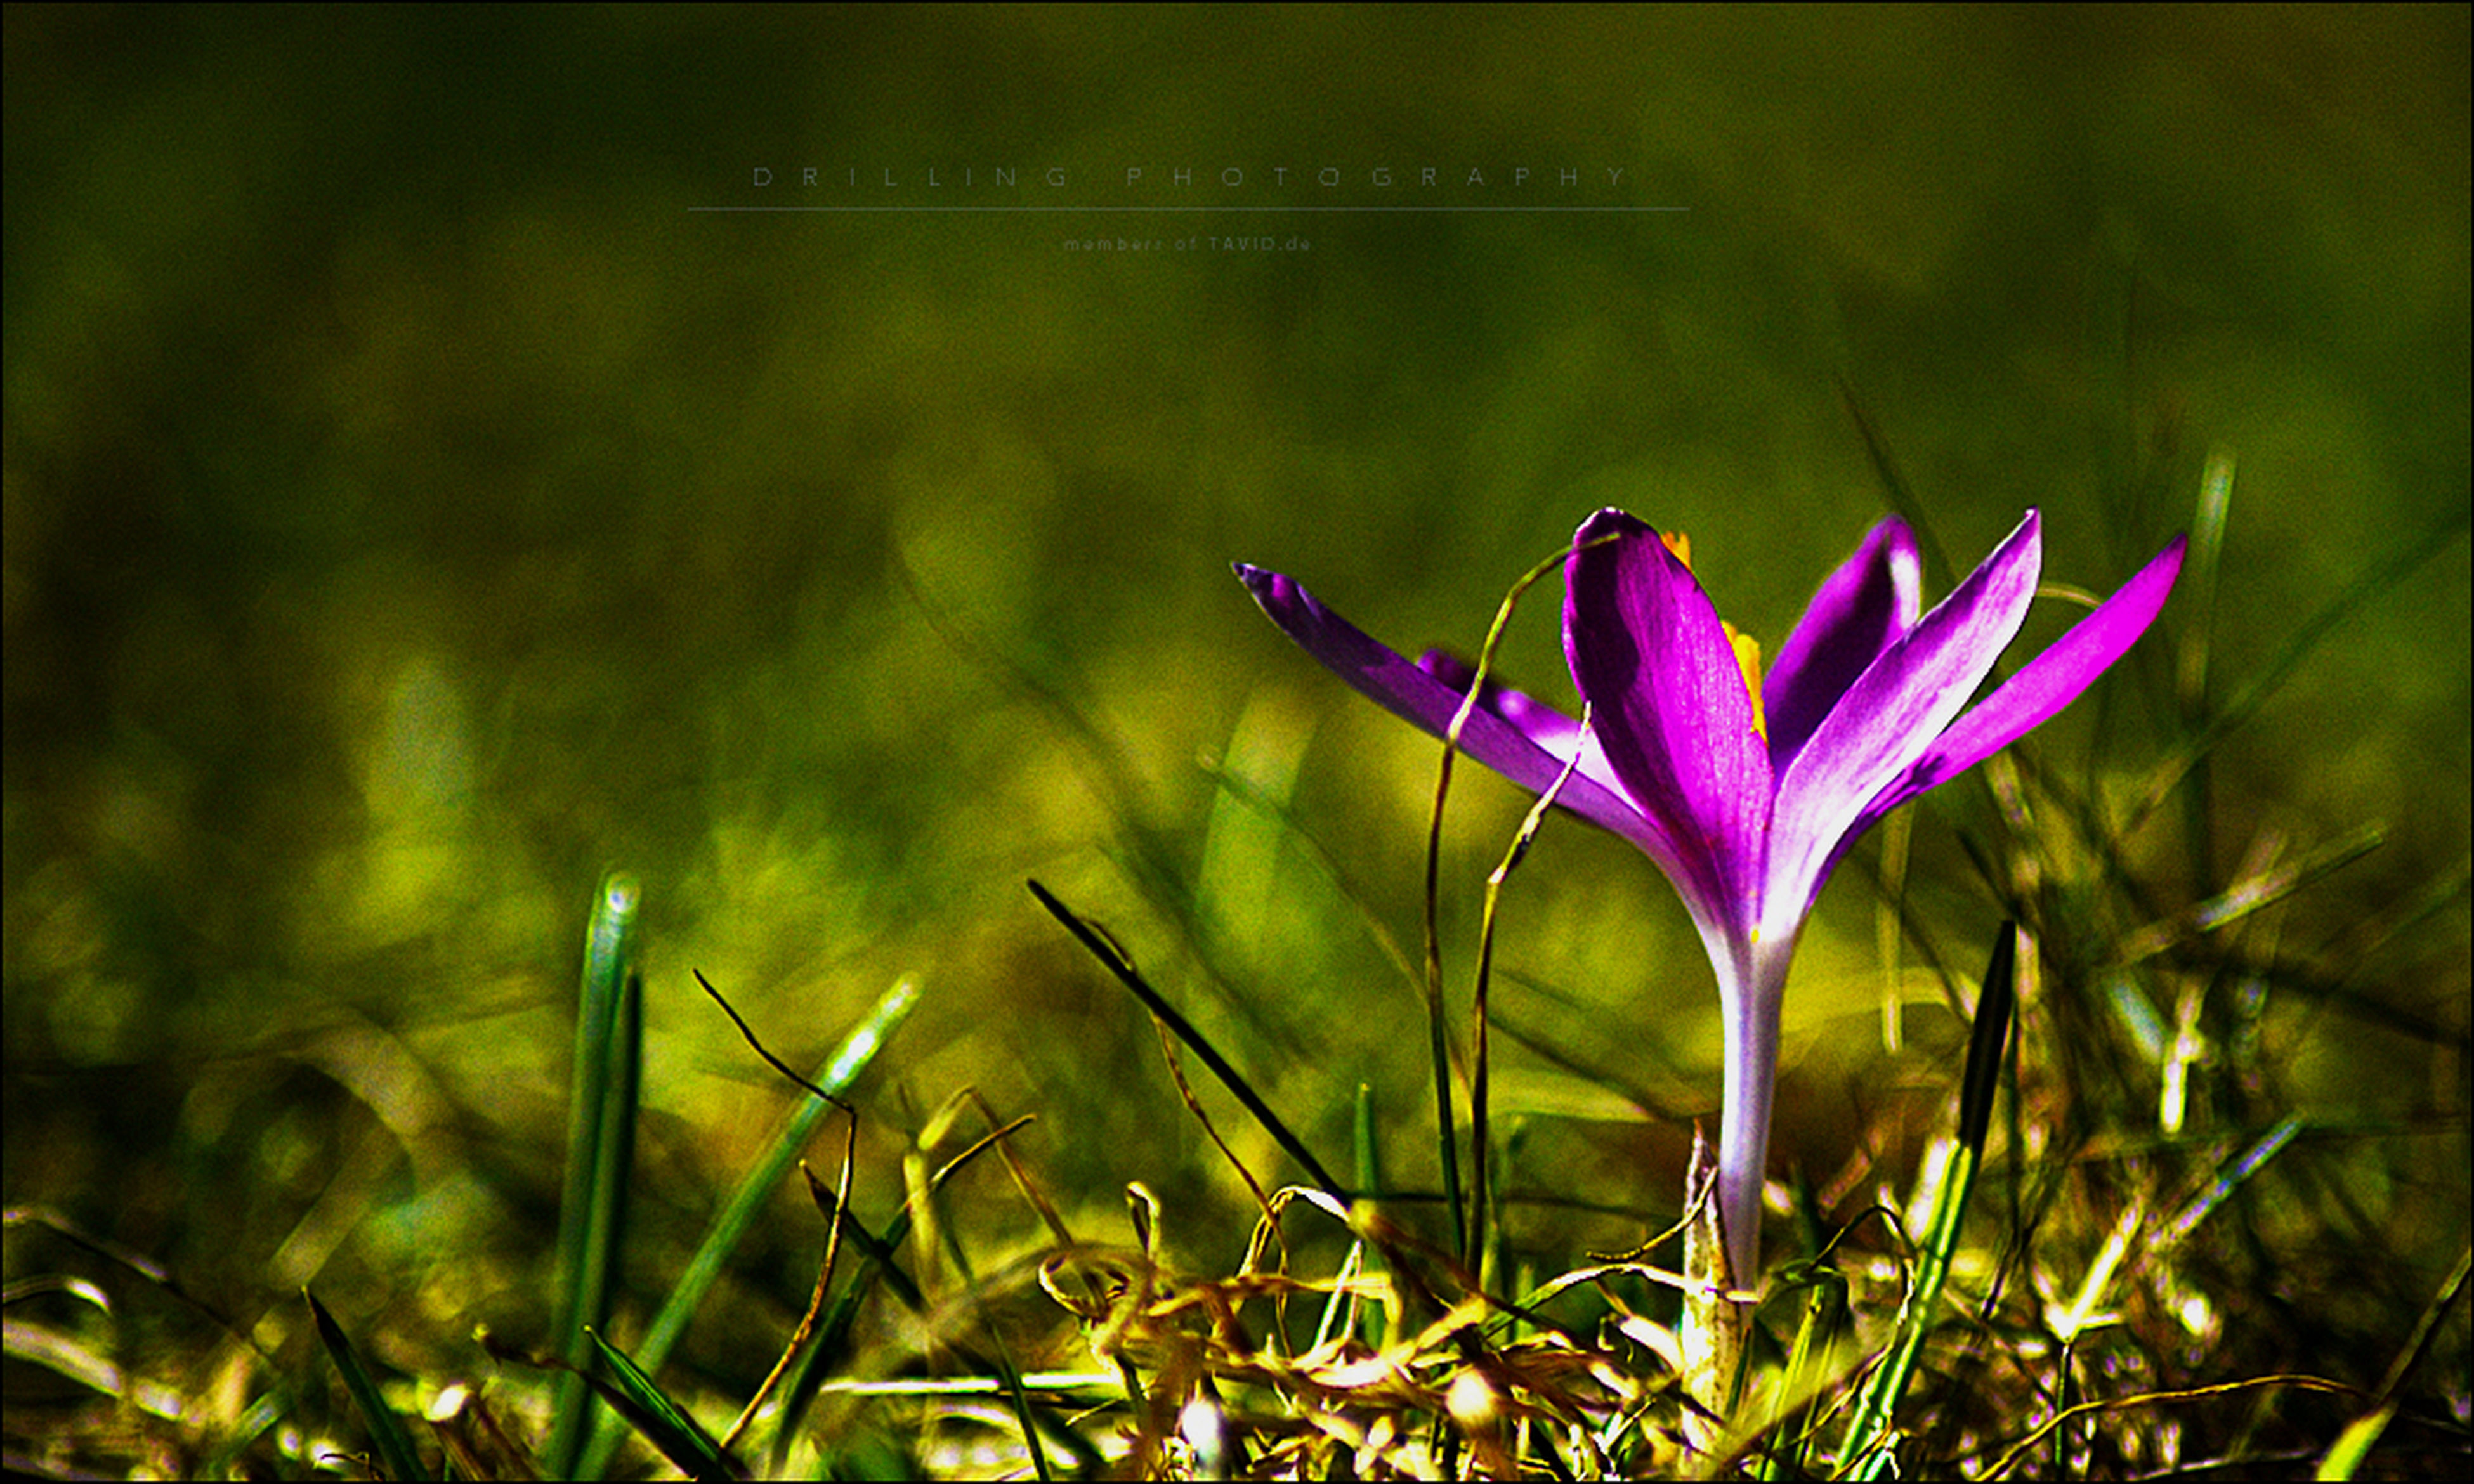 flower, freshness, growth, fragility, beauty in nature, petal, plant, nature, stem, focus on foreground, purple, blooming, pink color, flower head, close-up, field, leaf, day, outdoors, no people